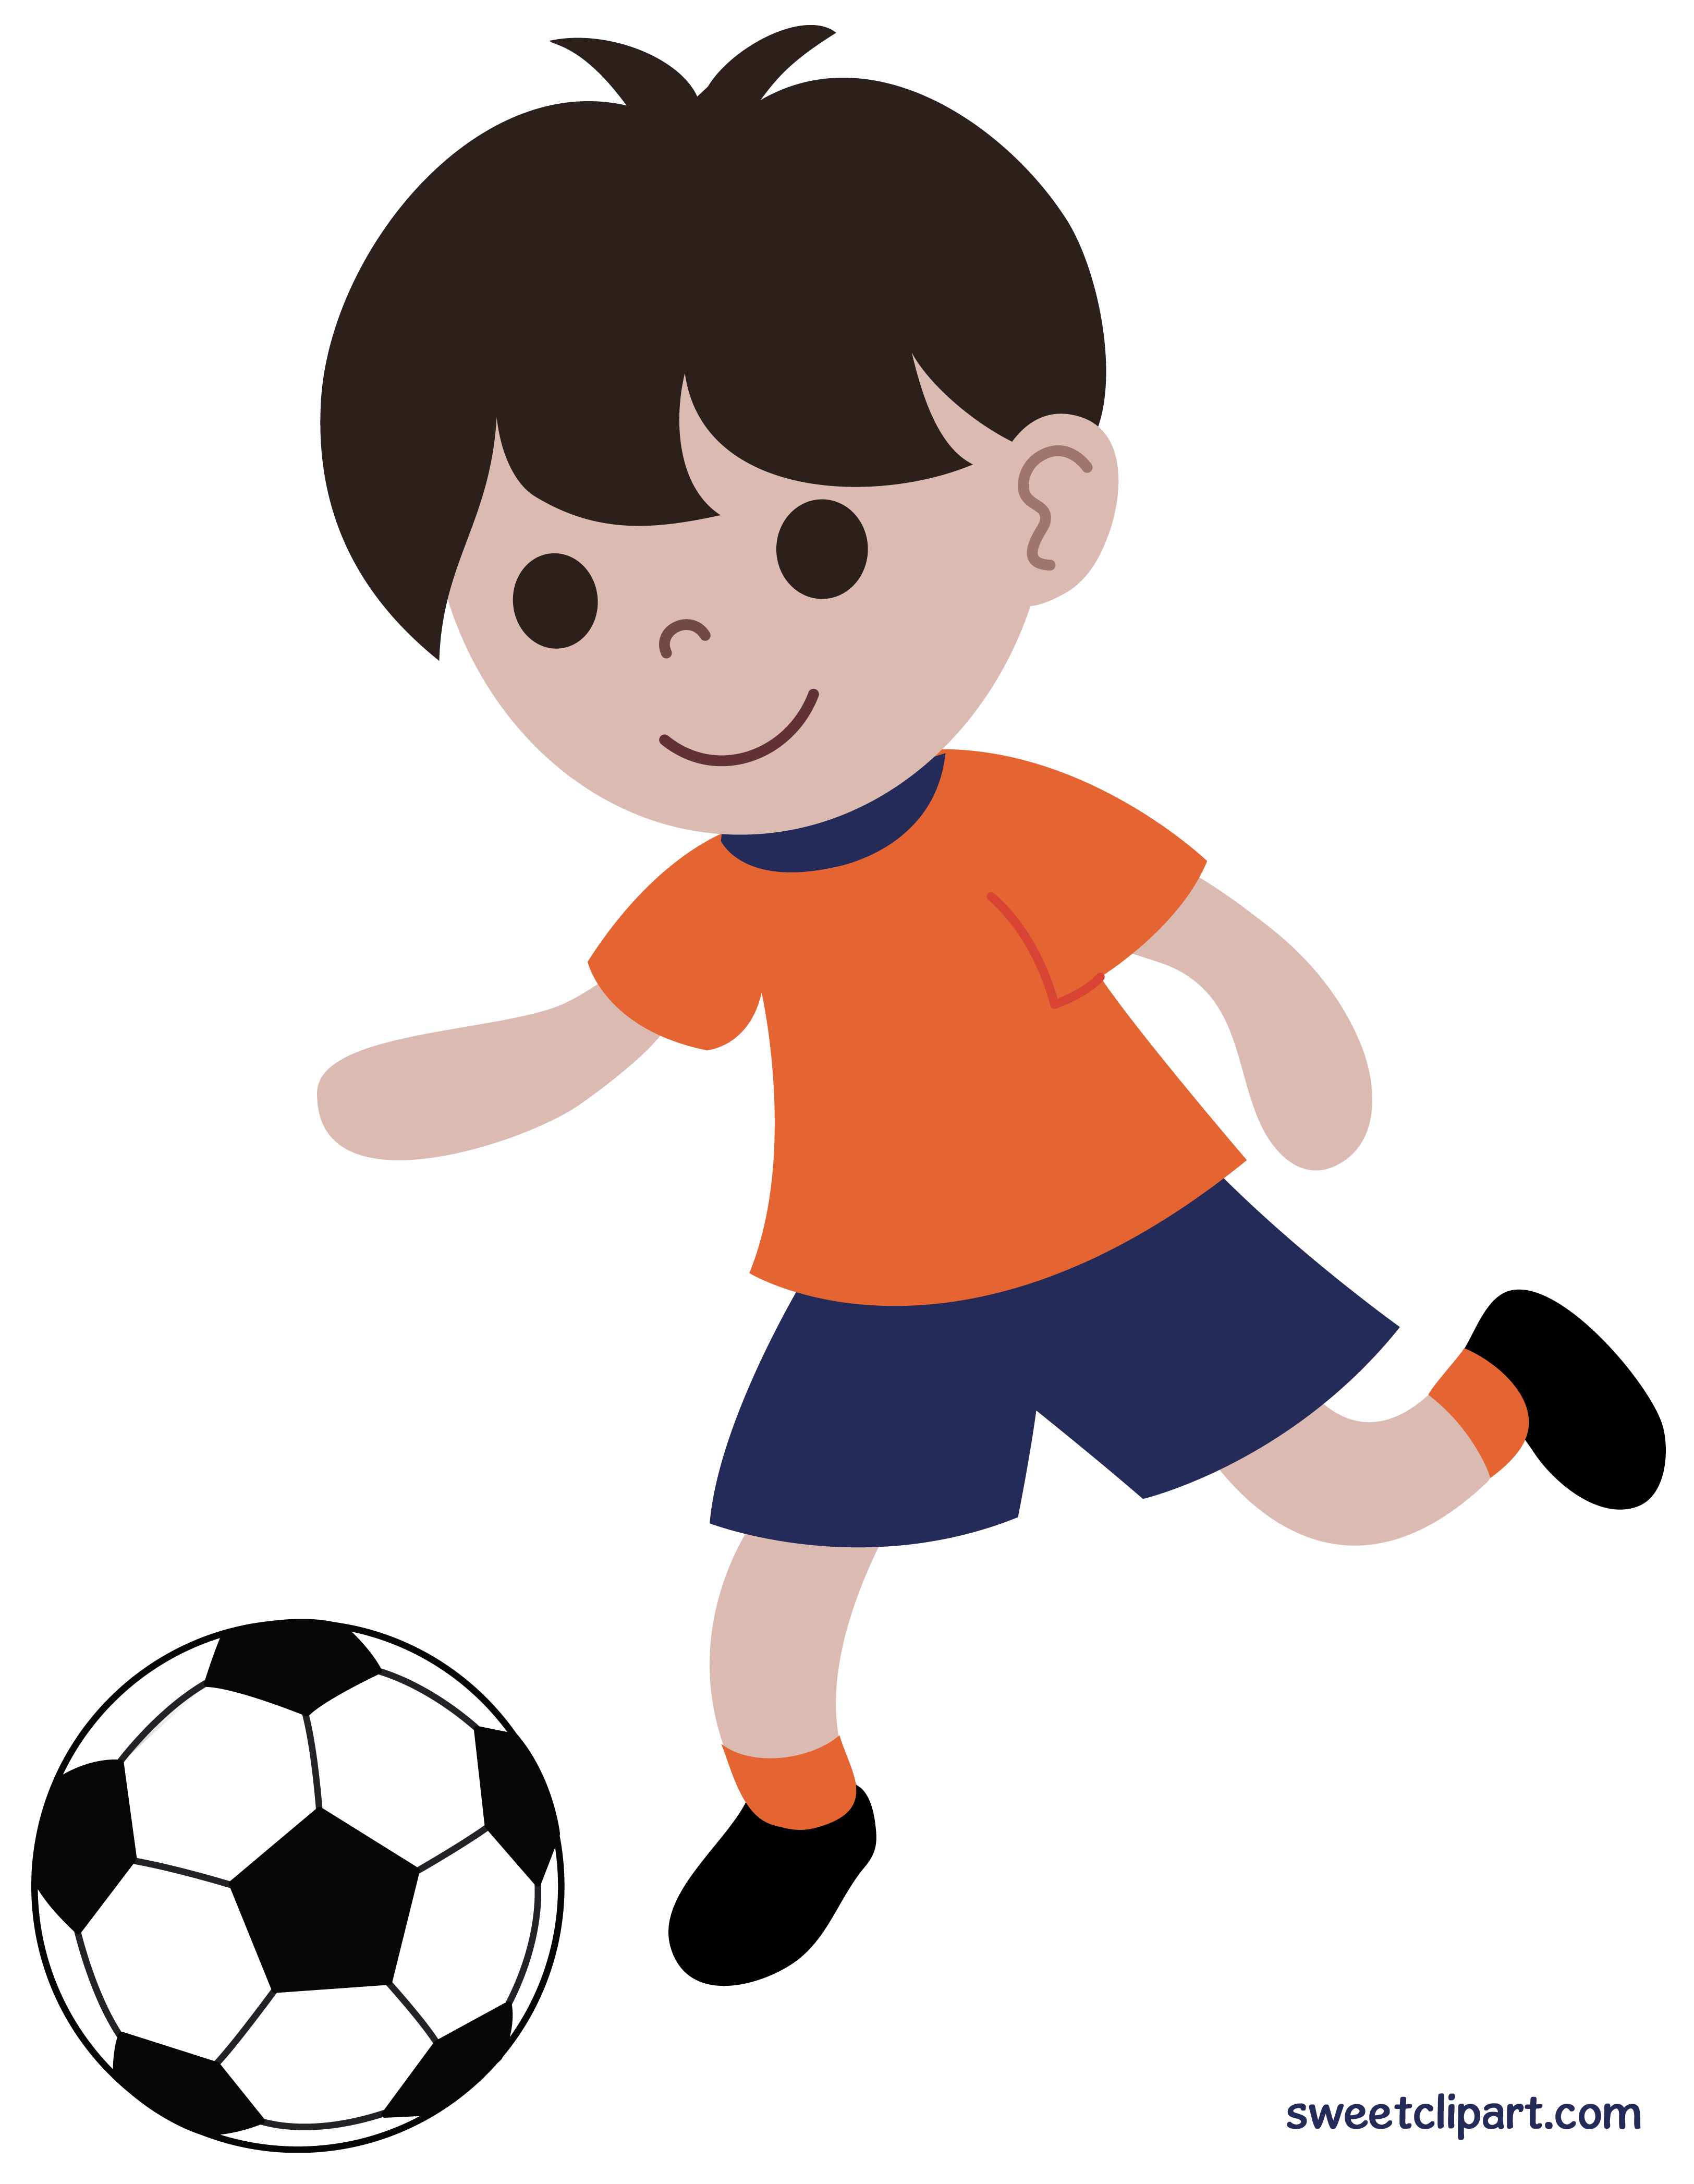 Animals playing football clipart png Girl Playing Soccer Clipart at GetDrawings.com | Free for personal ... png